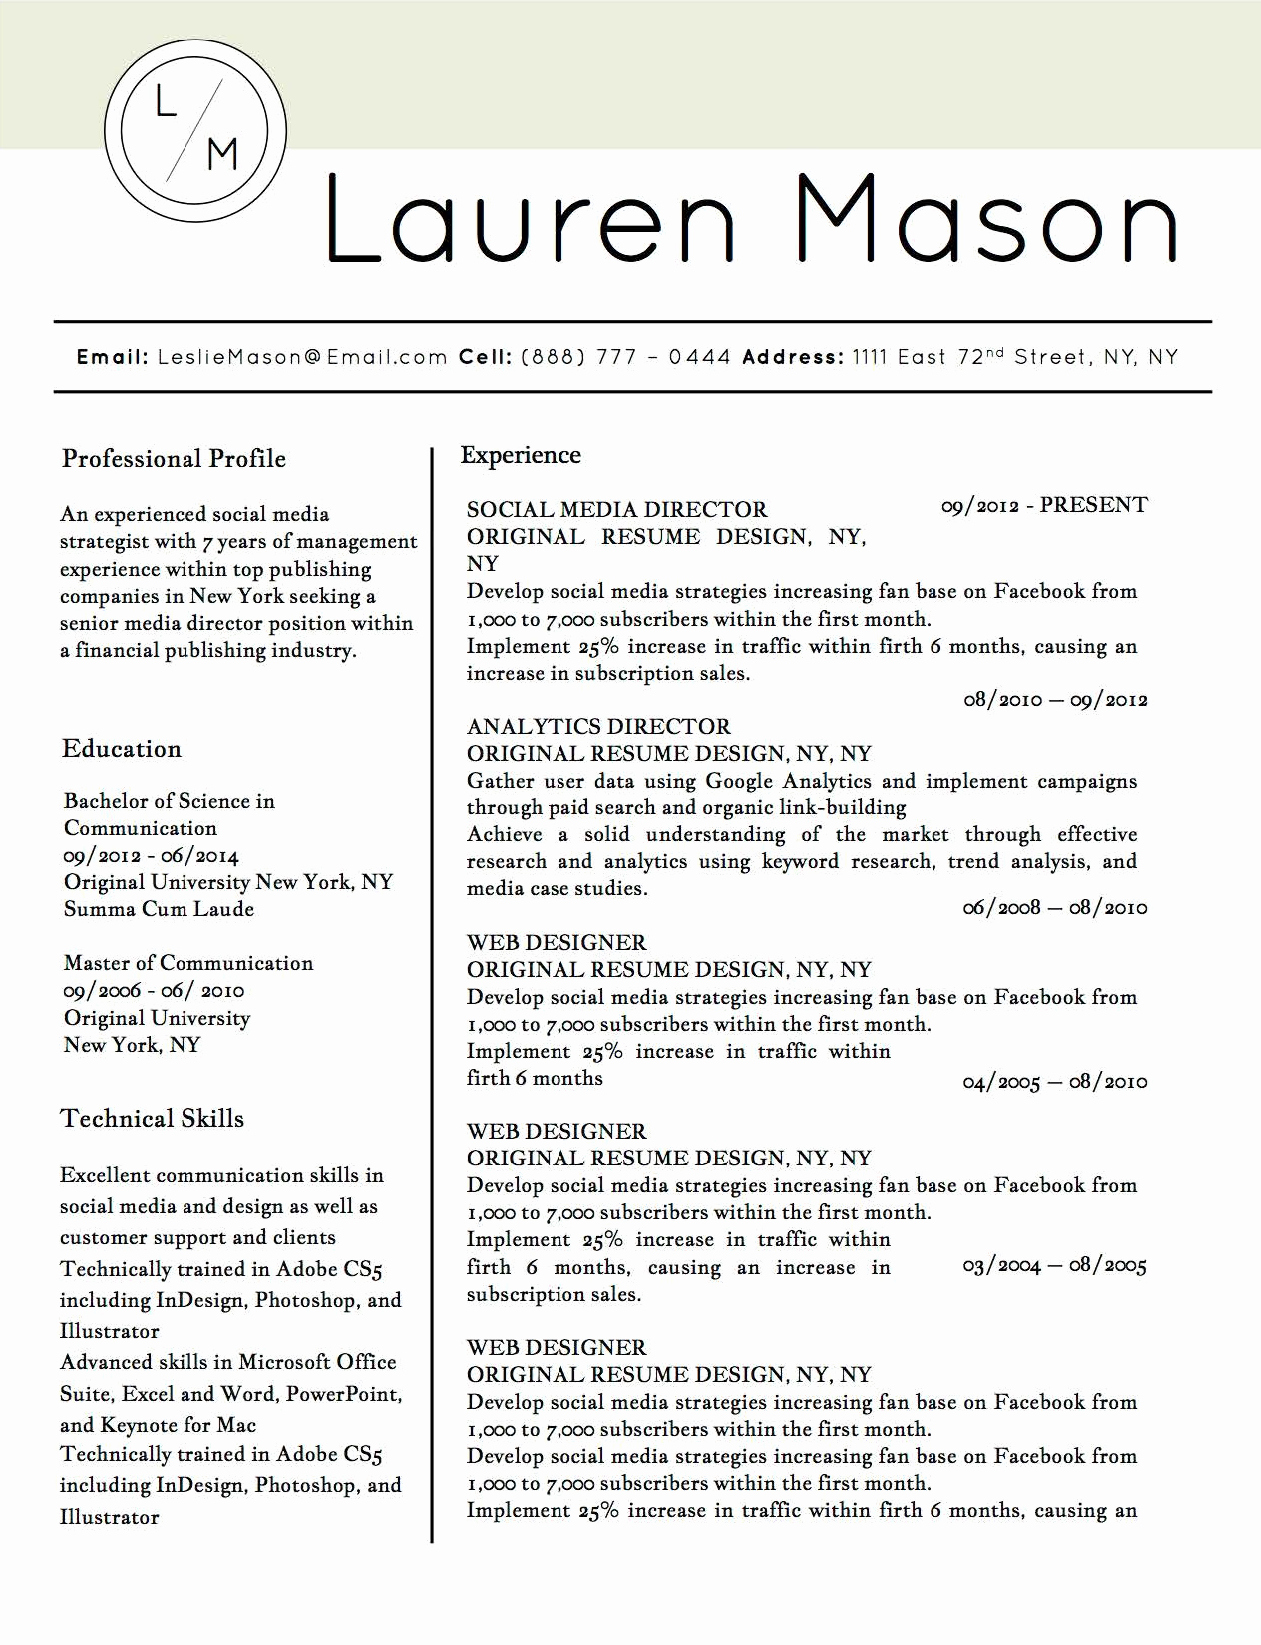 Microsoft Word Professional Resume Template Best Of Job Winning Resume Templates for Microsoft Word & Apple Pages